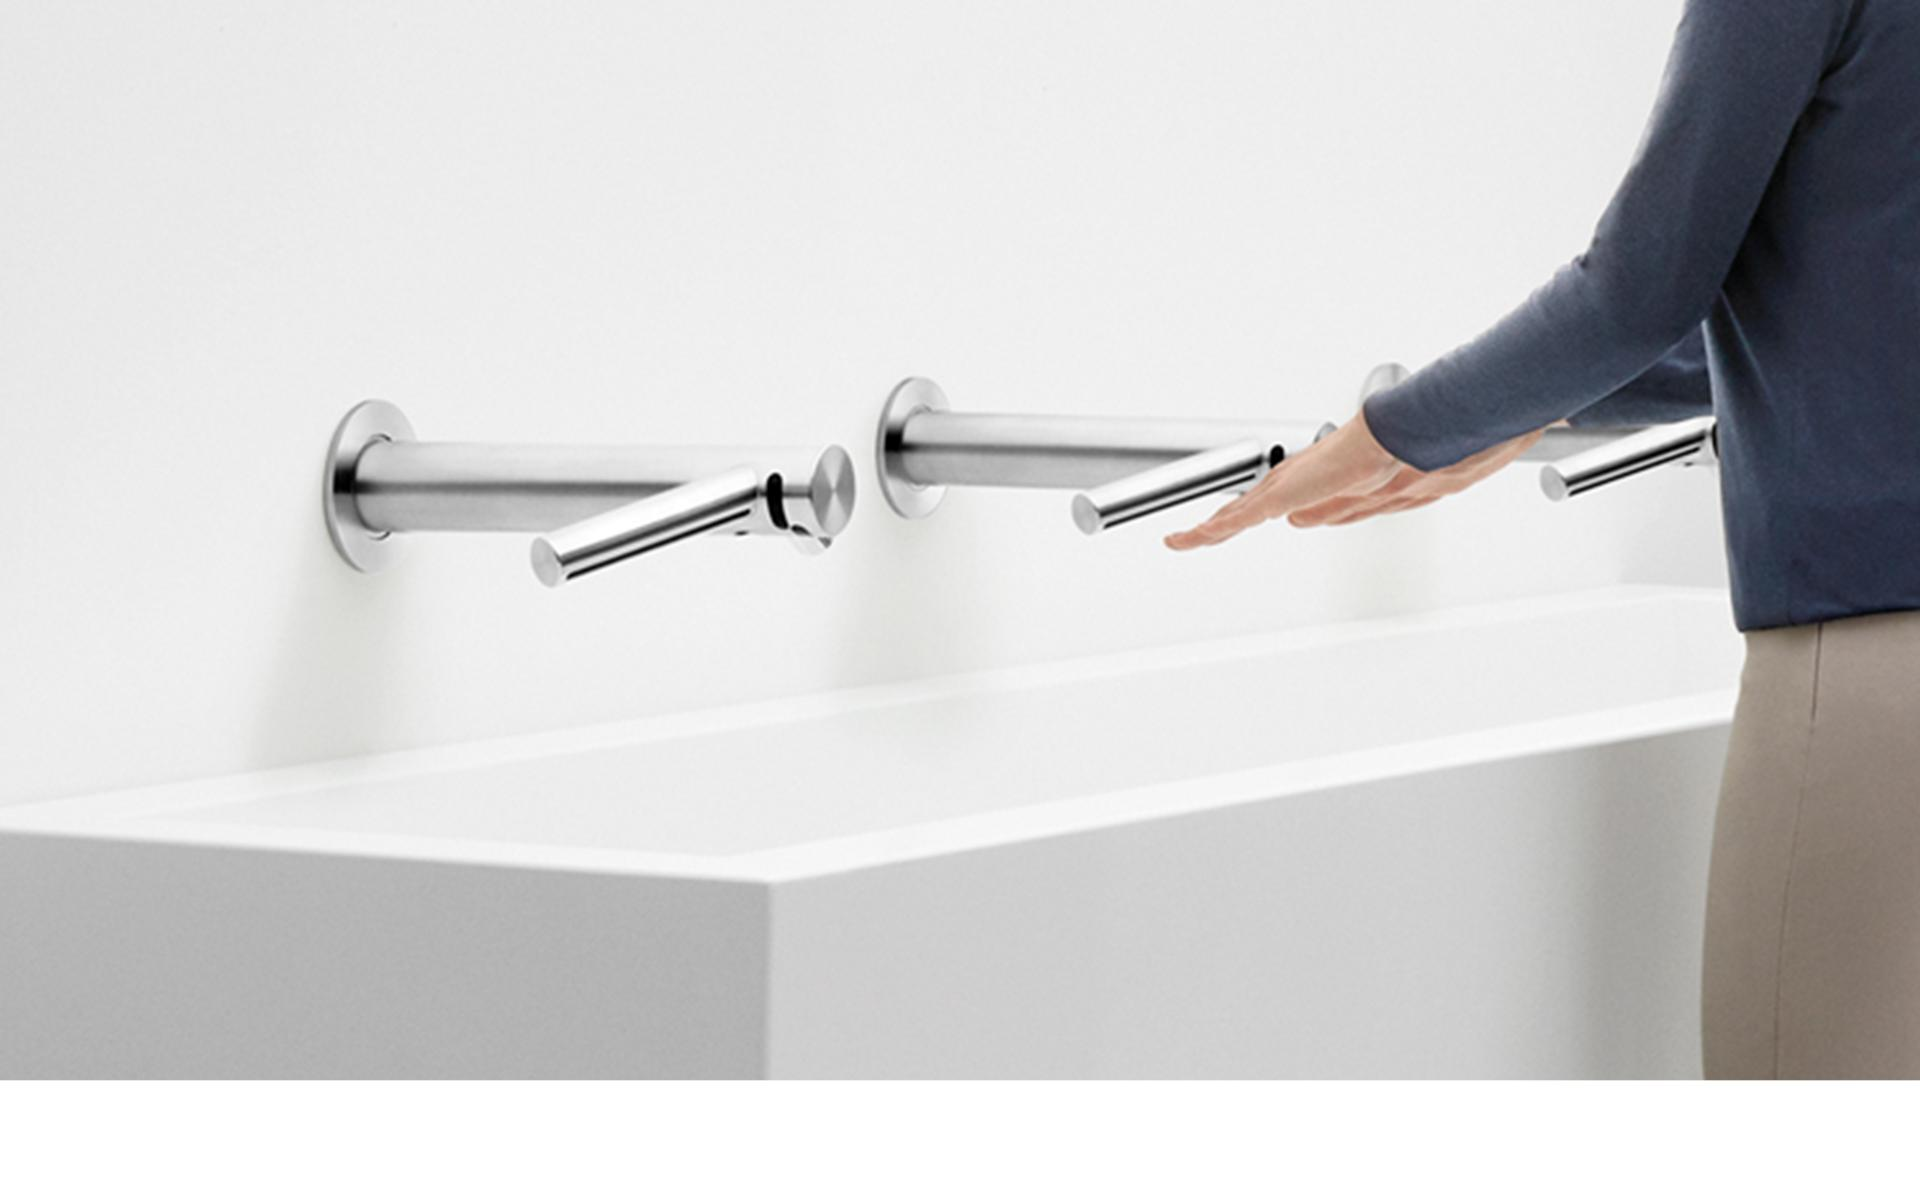 Drying hands at the Dyson Airblade Wash+Dry